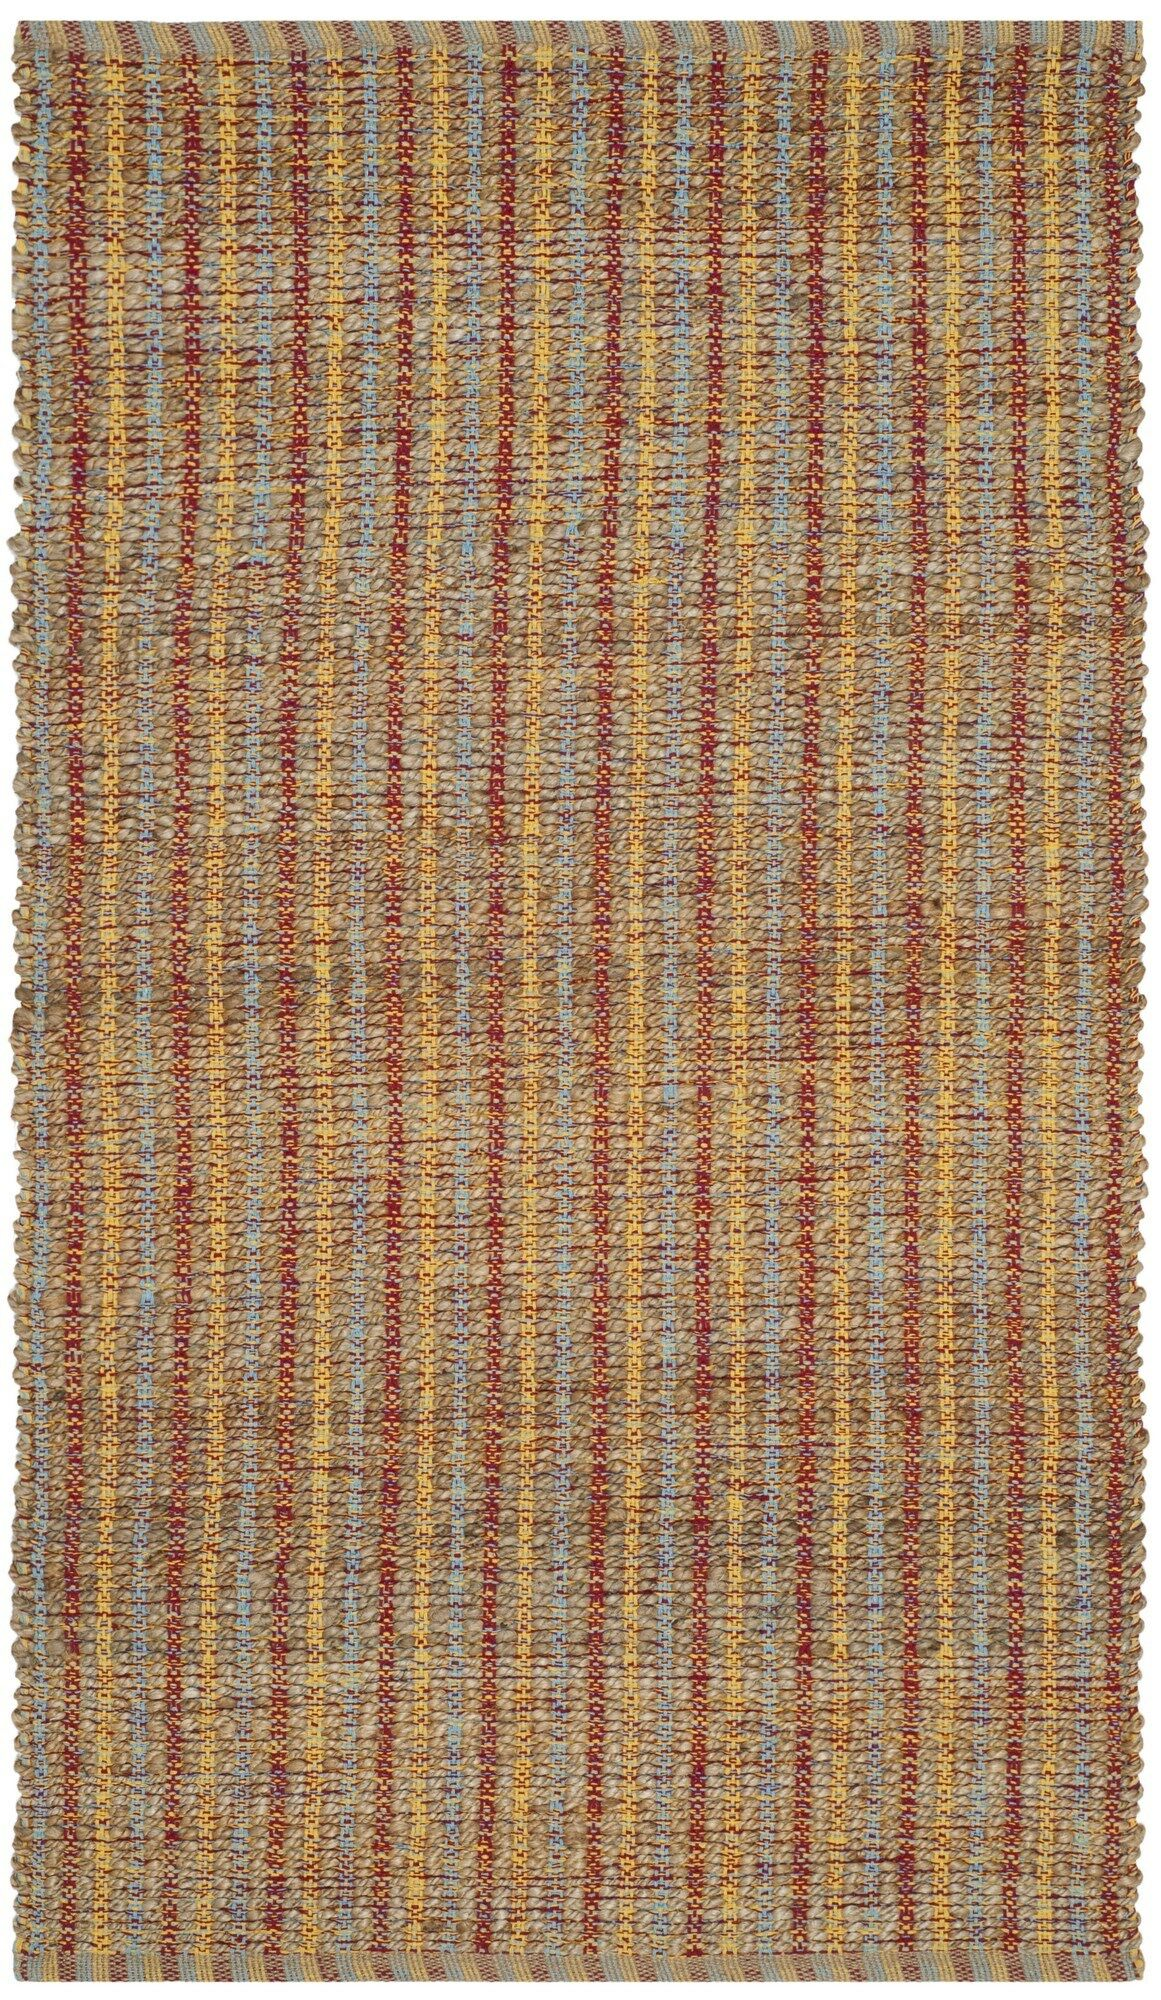 Bowen Hand-Woven Orange/Brown Area Rug Rug Size: Rectangle 5' x 8'